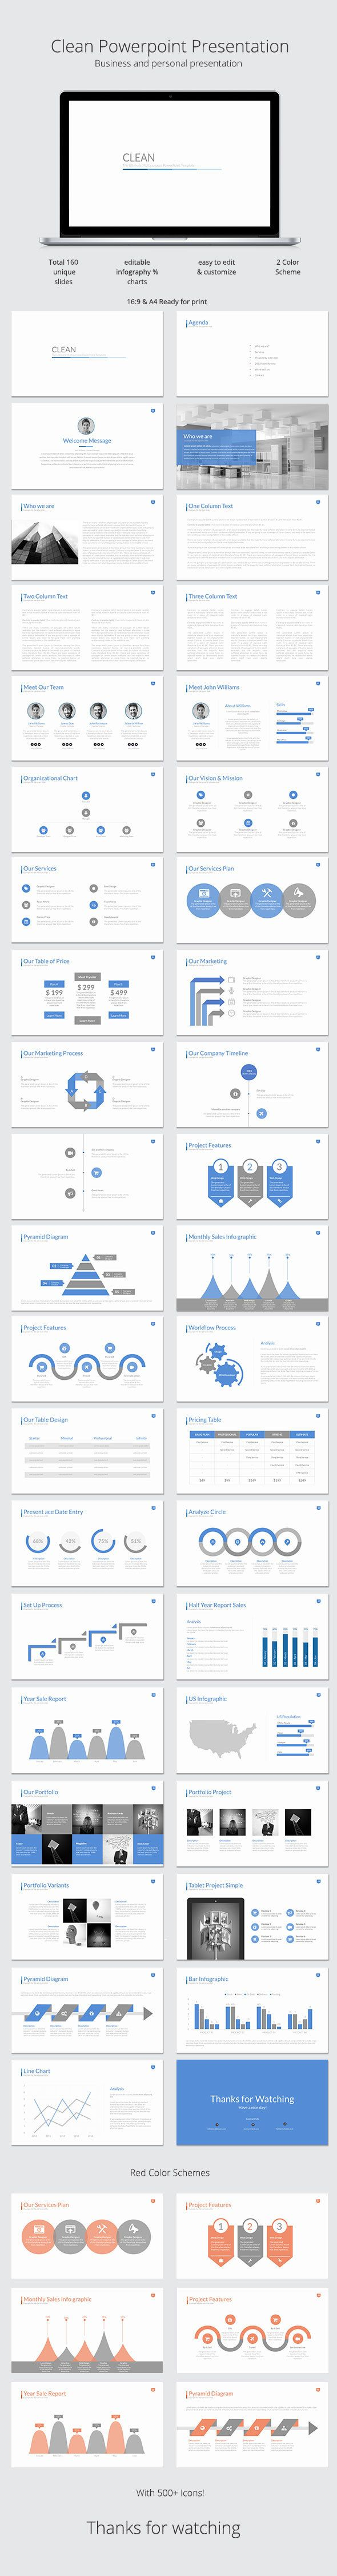 Coolmathgamesus  Unusual  Ideas About Powerpoint Presentations On Pinterest With Luxury Clean Powerpoint Template With Archaic What Is Powerpoint Viewer Also Microsoft Powerpoint Templates  Free Download In Addition Mac Powerpoint Shortcuts And Presentation Ideas Other Than Powerpoint As Well As Polygons Powerpoint Additionally Macroeconomics Powerpoint From Pinterestcom With Coolmathgamesus  Luxury  Ideas About Powerpoint Presentations On Pinterest With Archaic Clean Powerpoint Template And Unusual What Is Powerpoint Viewer Also Microsoft Powerpoint Templates  Free Download In Addition Mac Powerpoint Shortcuts From Pinterestcom